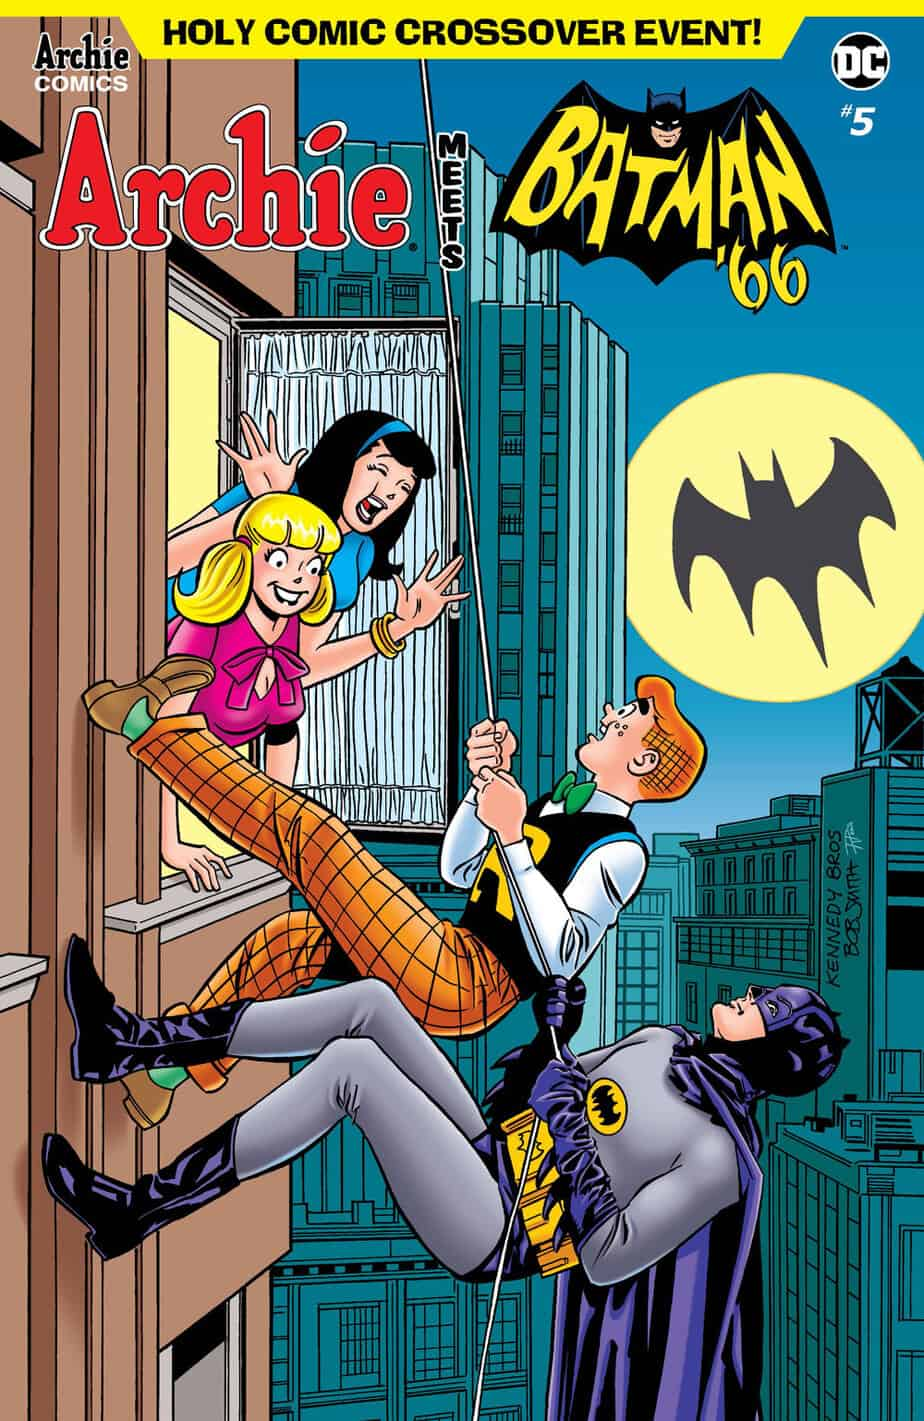 Archie Meets Batman '66 – Variant Cover by Pat & Tim Kennedy